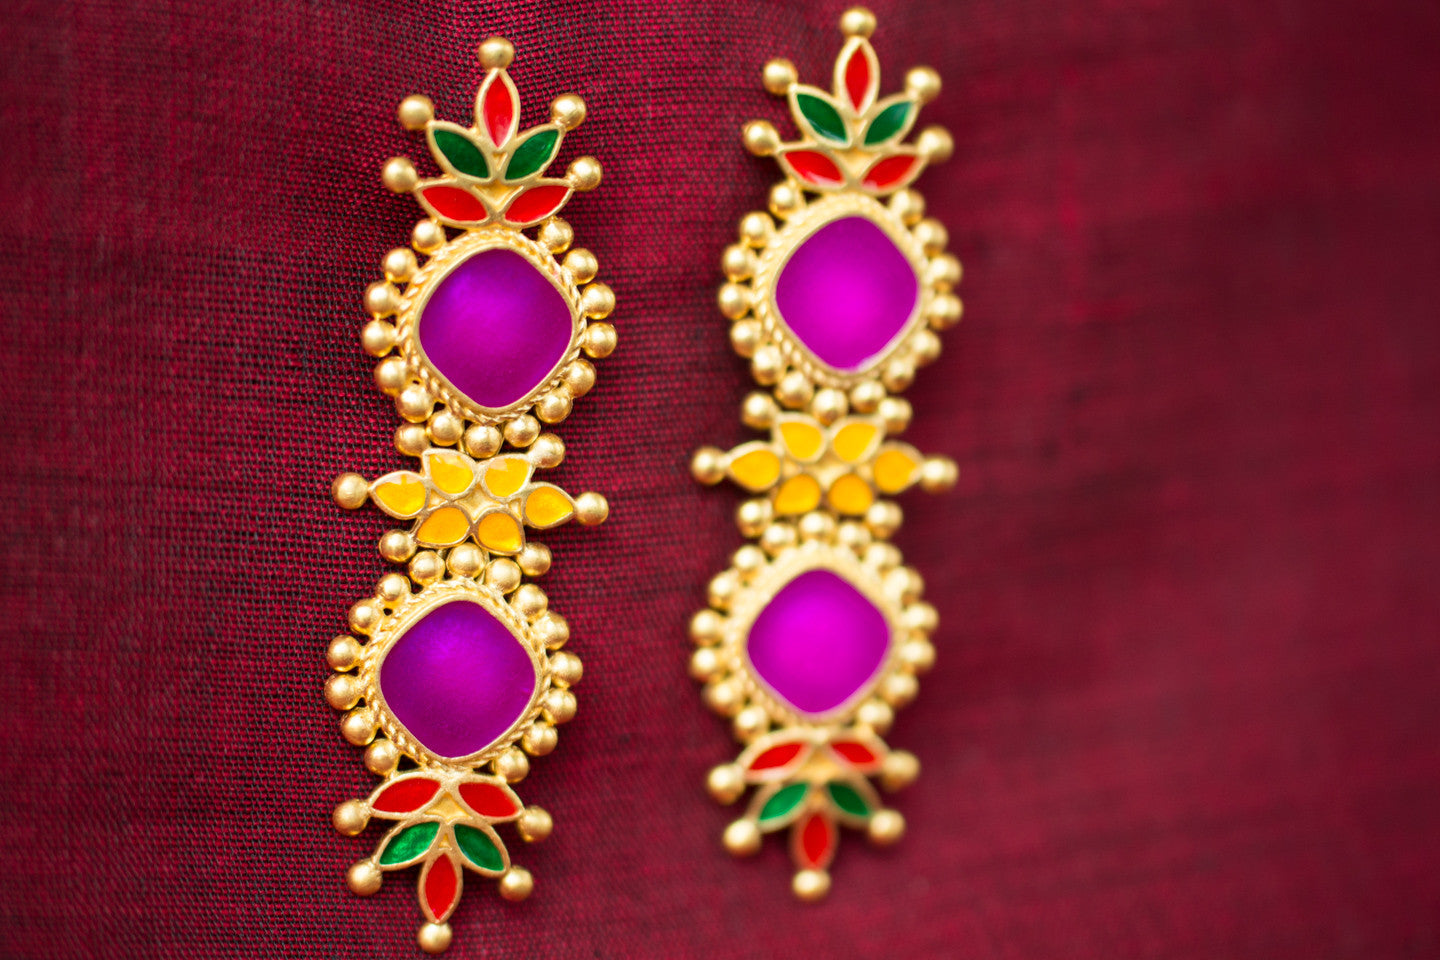 20a420-silver-gold-plated-amrapali-multi-color-enamel-earrings-alternate-view